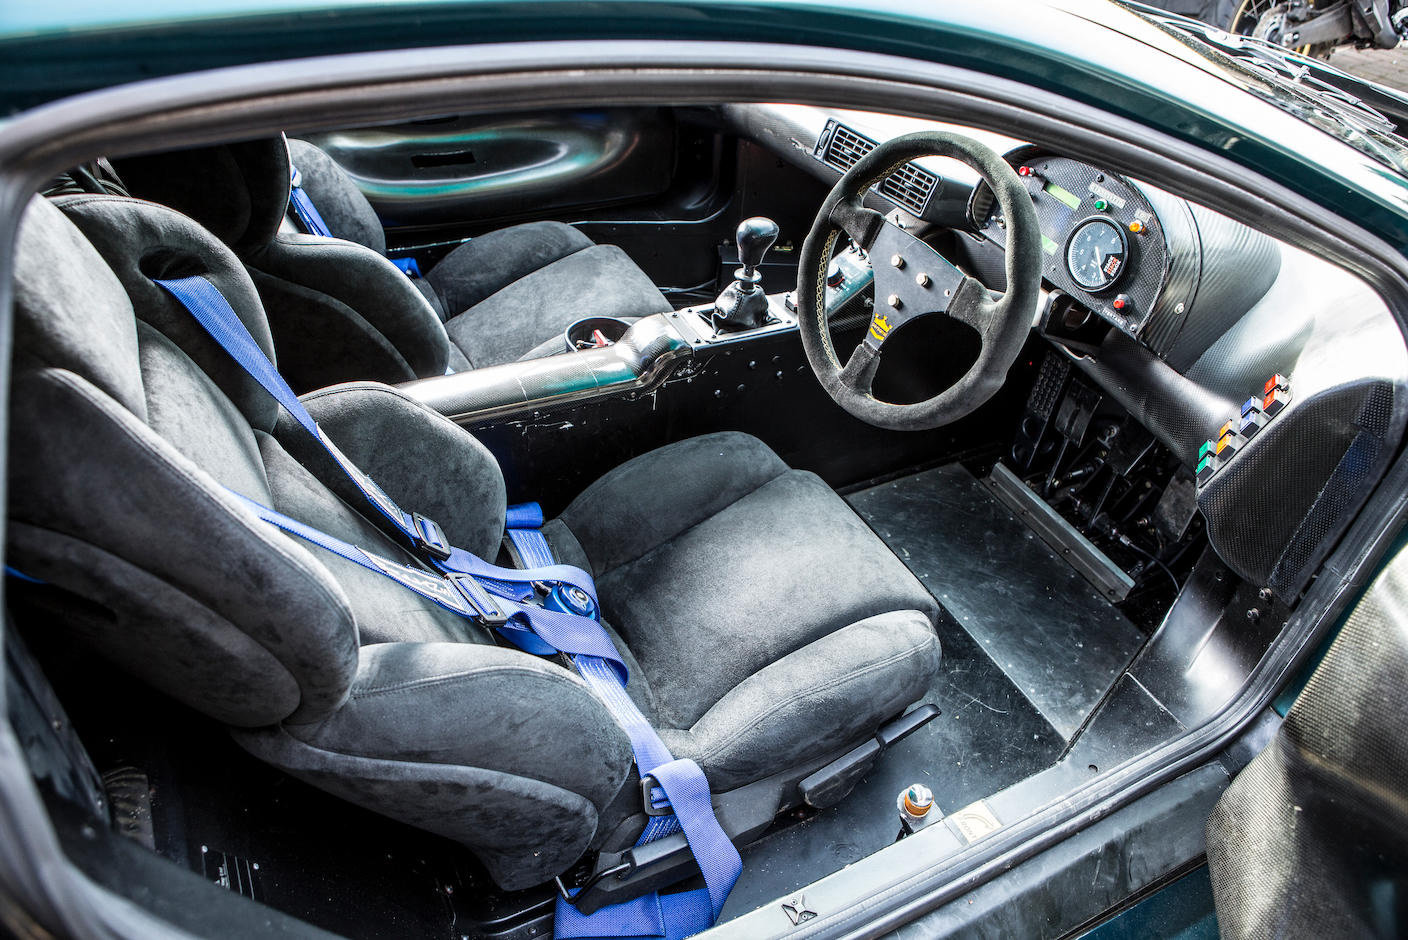 1993 Jaguar XJ220C-002 One of only four examples to FIA/IMSA spec For Sale (picture 4 of 6)